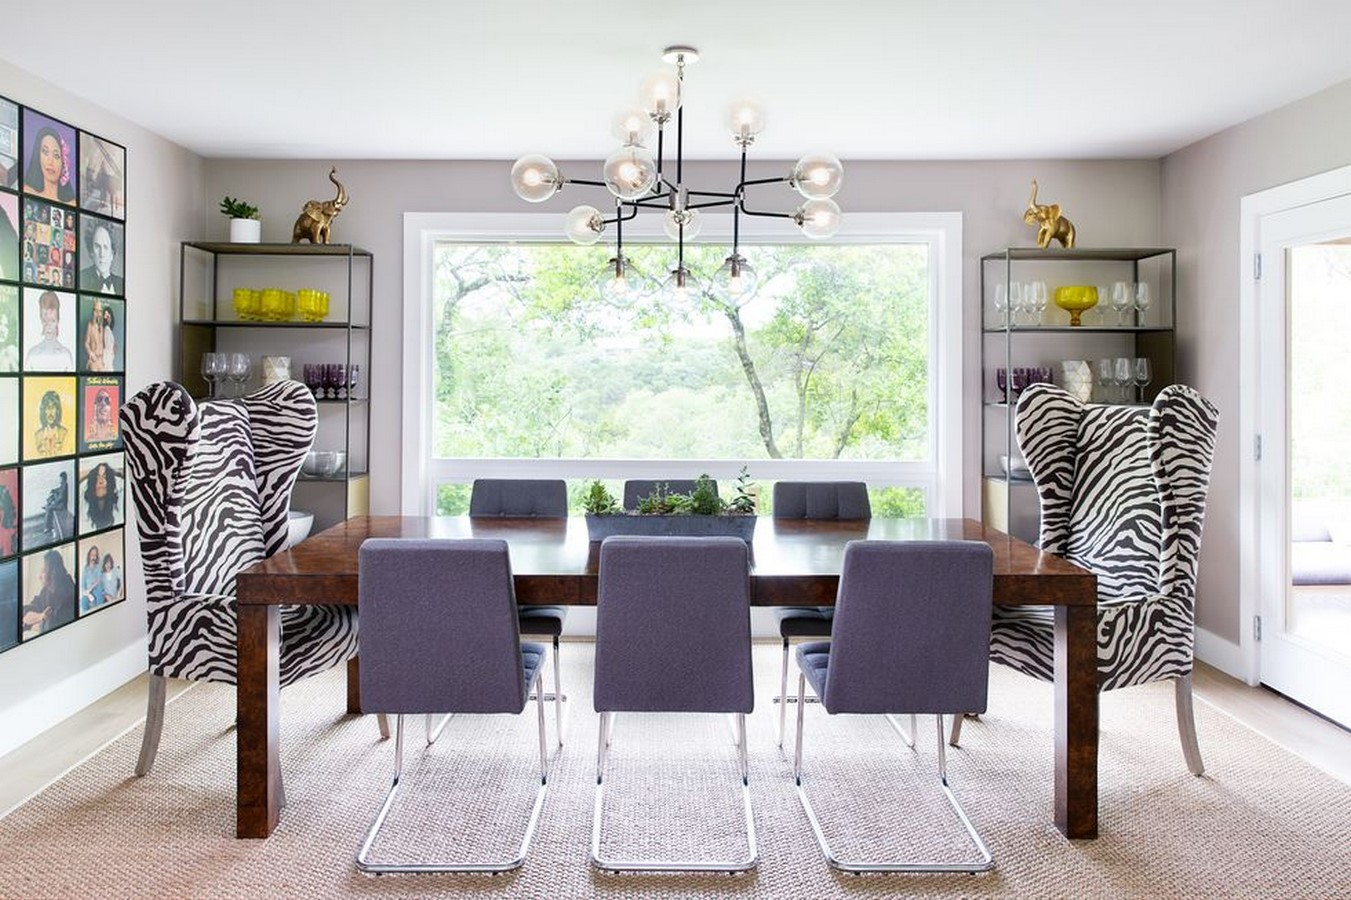 10 Dining rooms ideas that can enhance the space - Sheet16